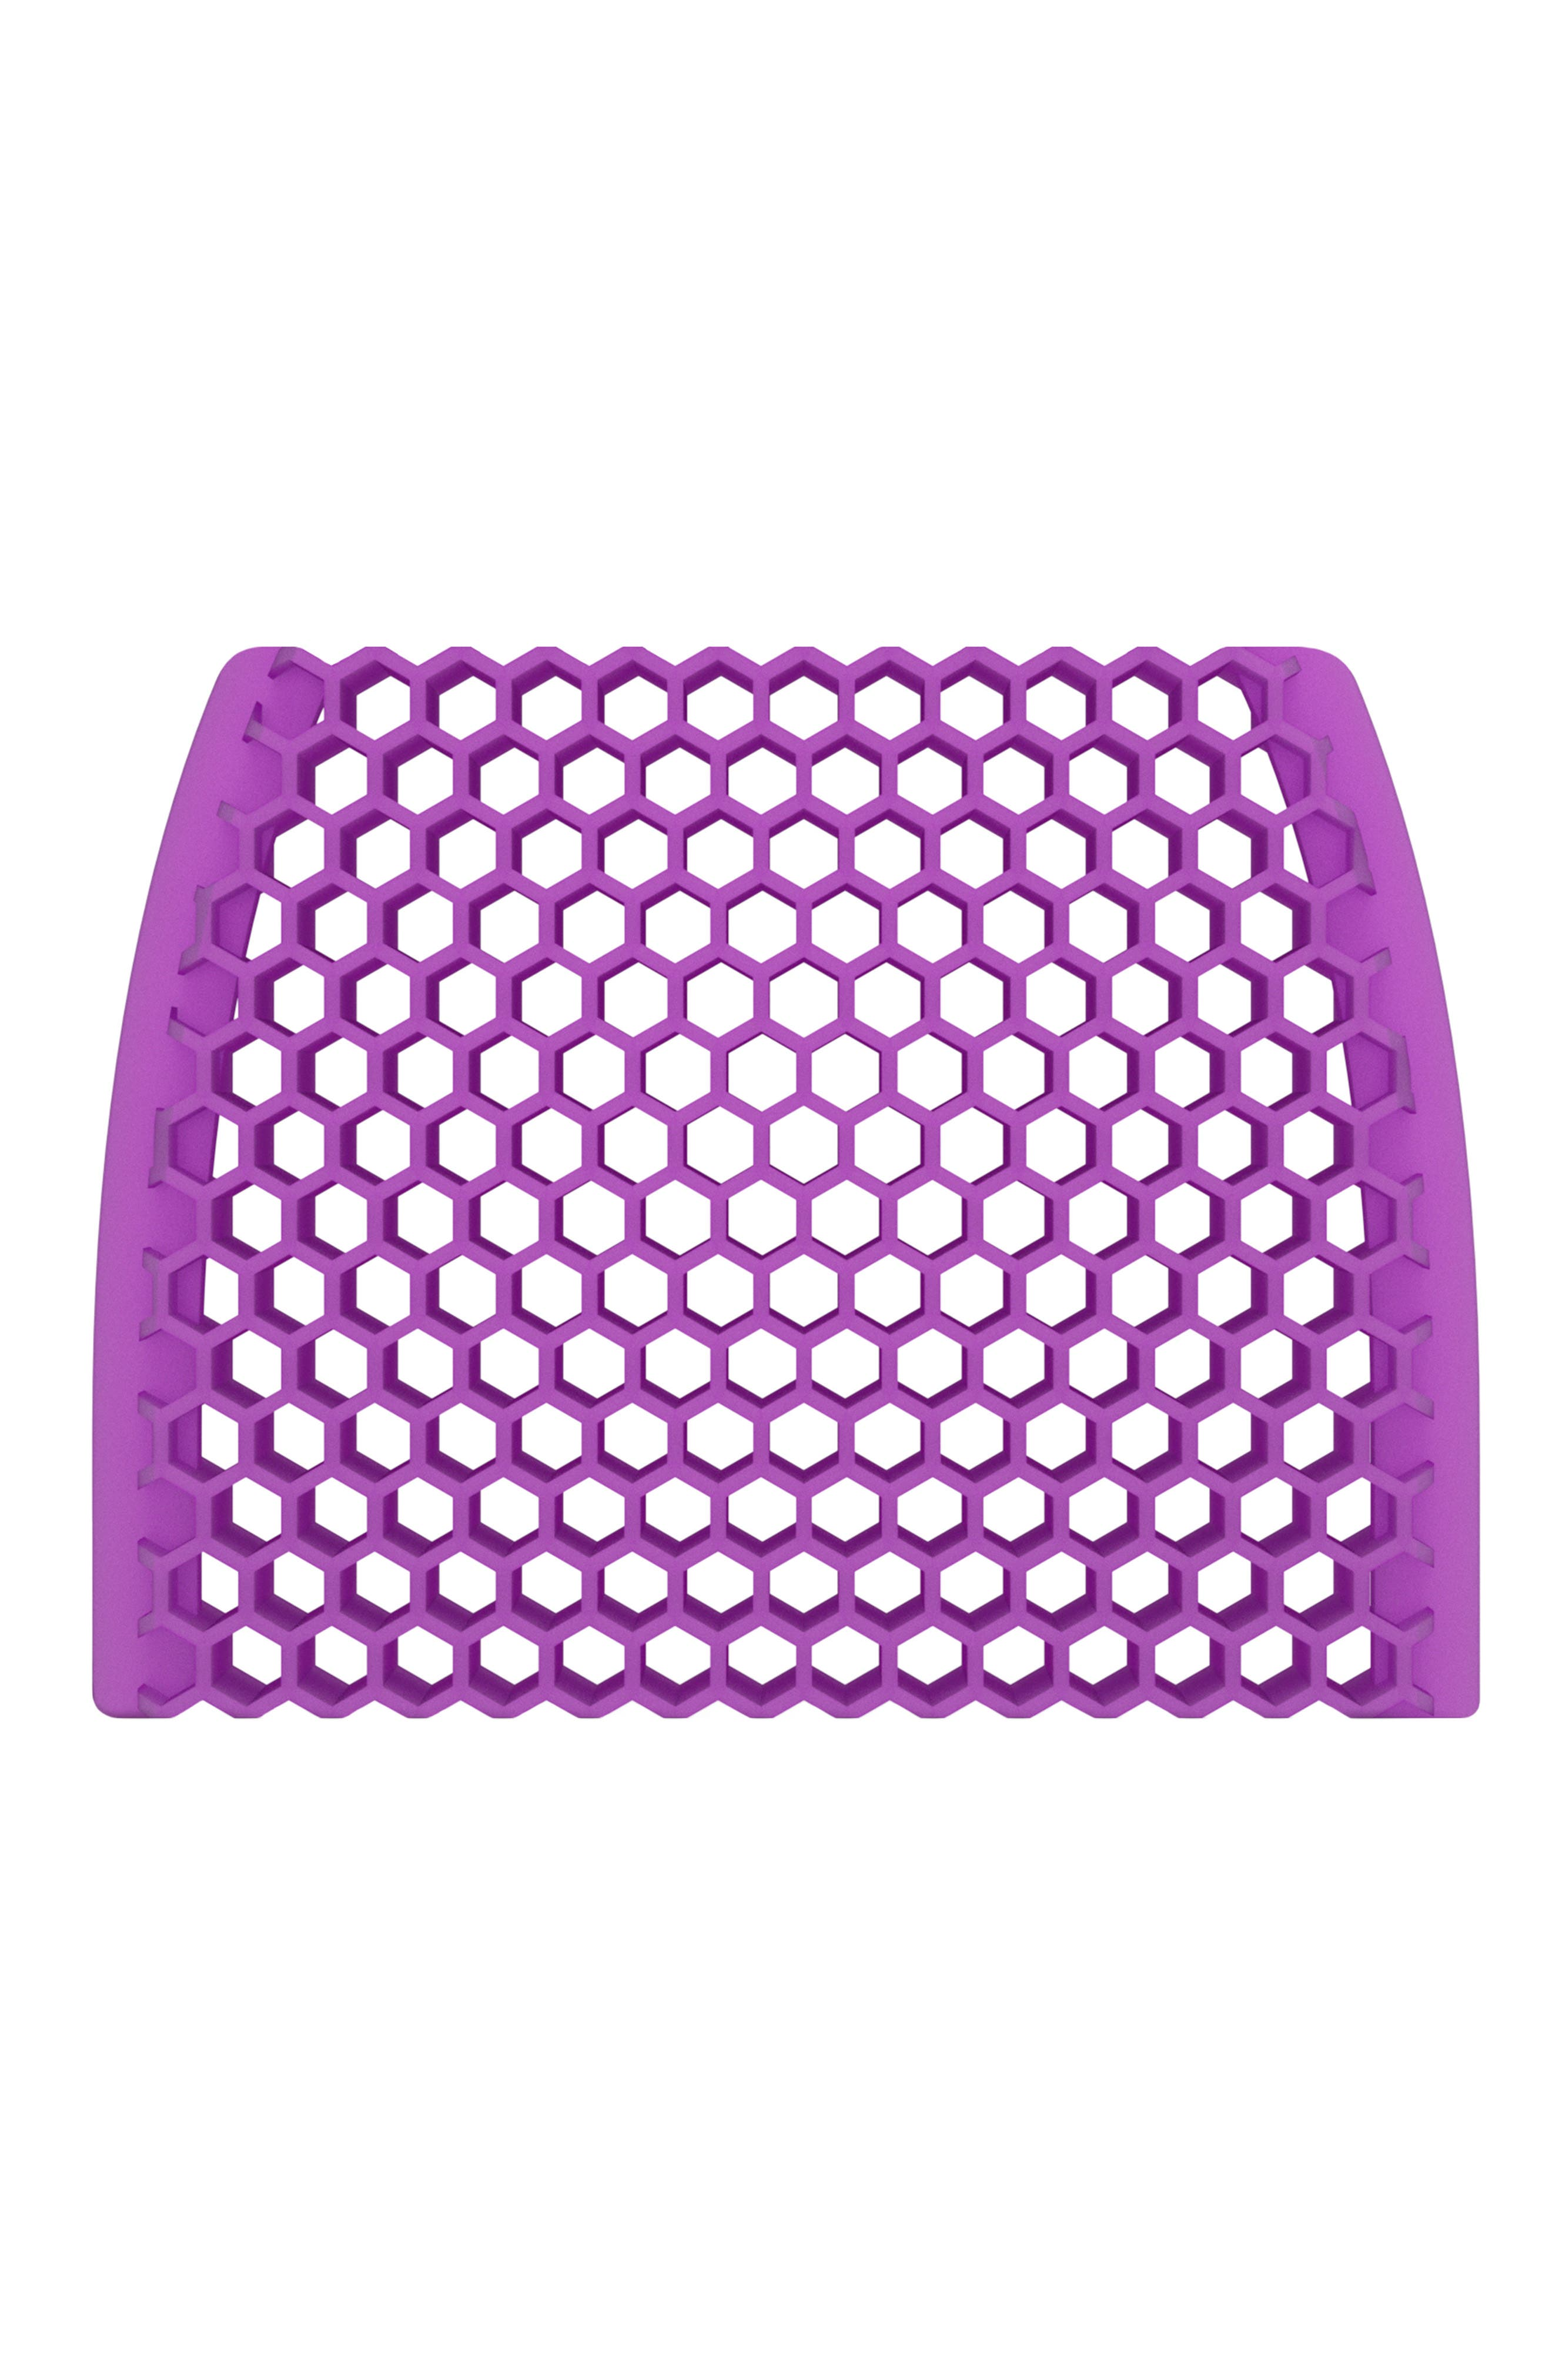 Exfoliband Silicone Loofah,                             Main thumbnail 1, color,                             NO COLOR